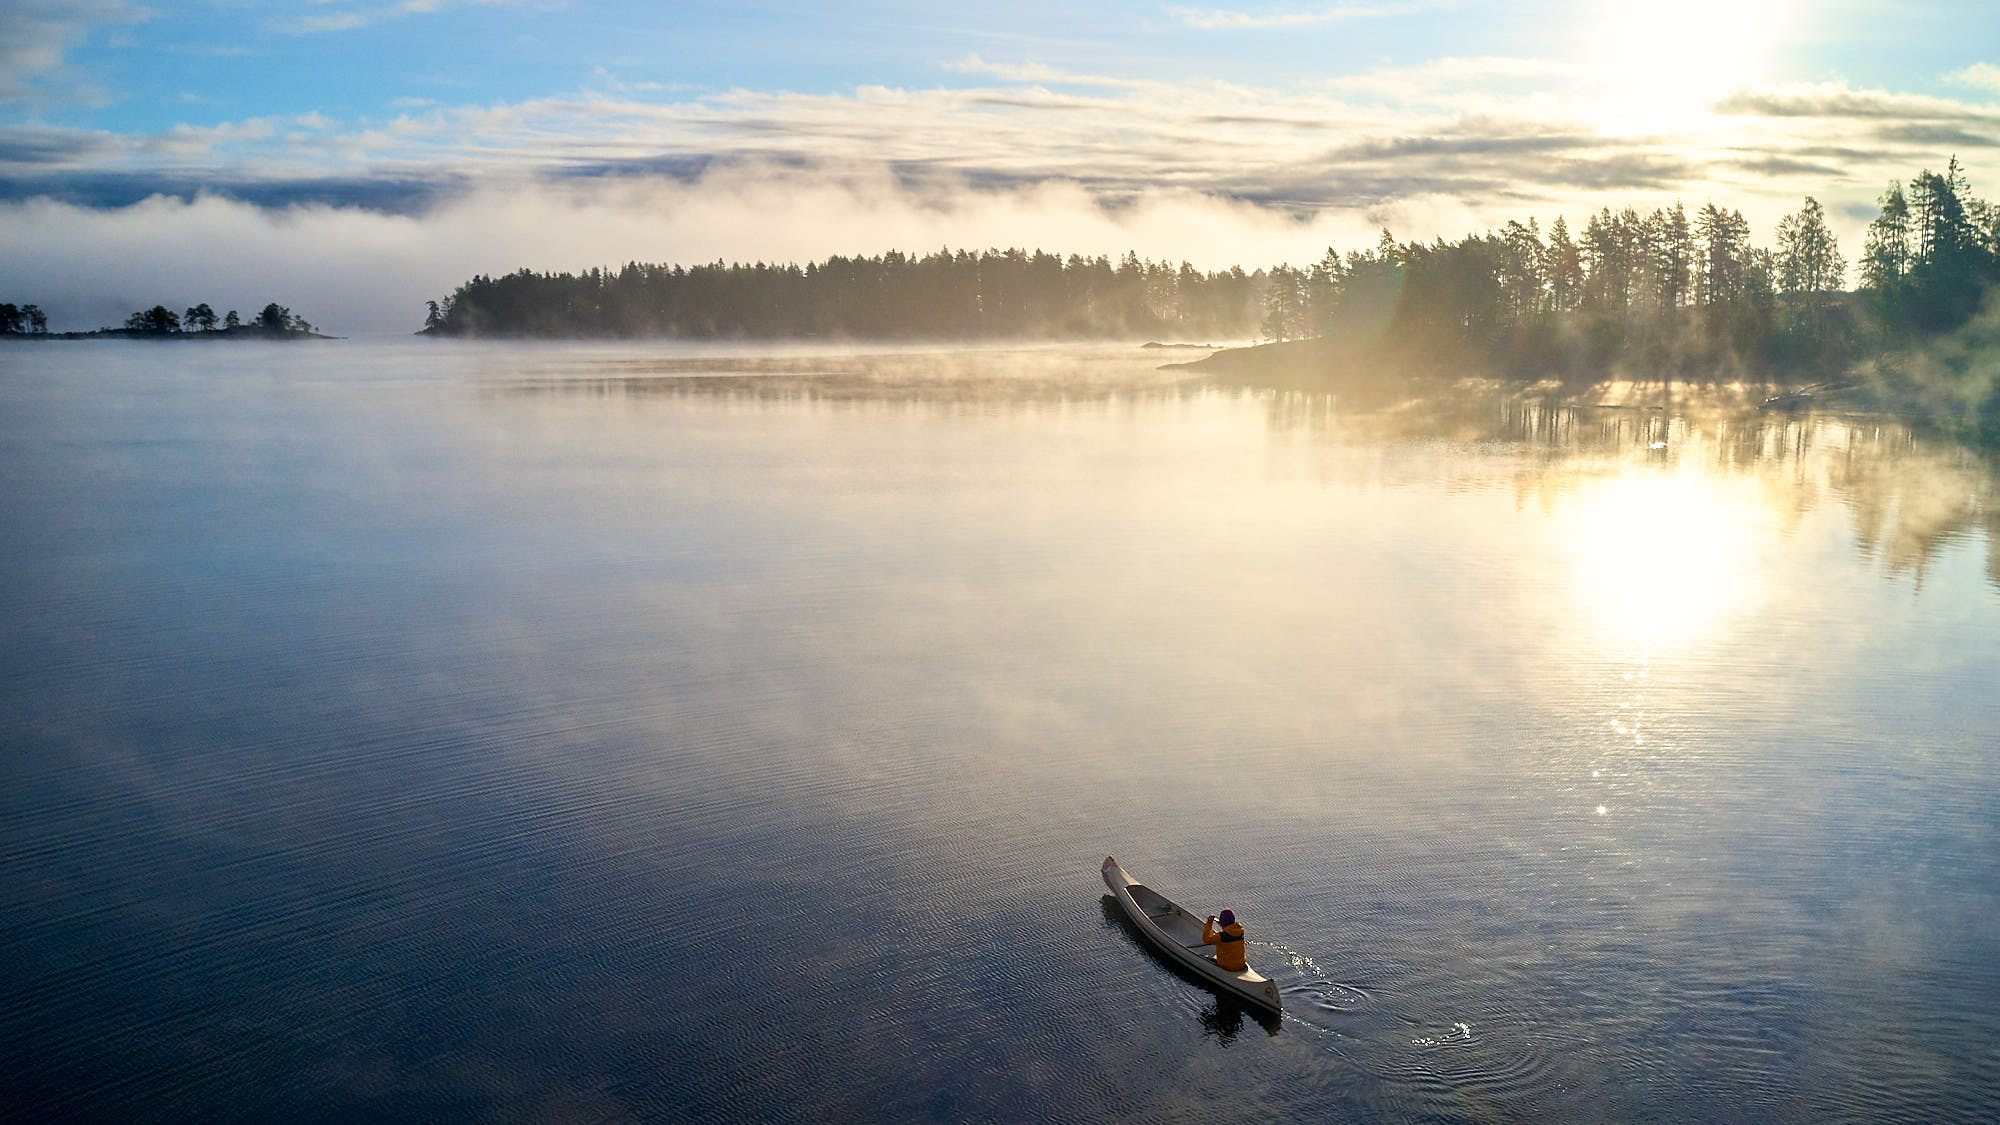 Canoe on a lake in Sweden at sunrise